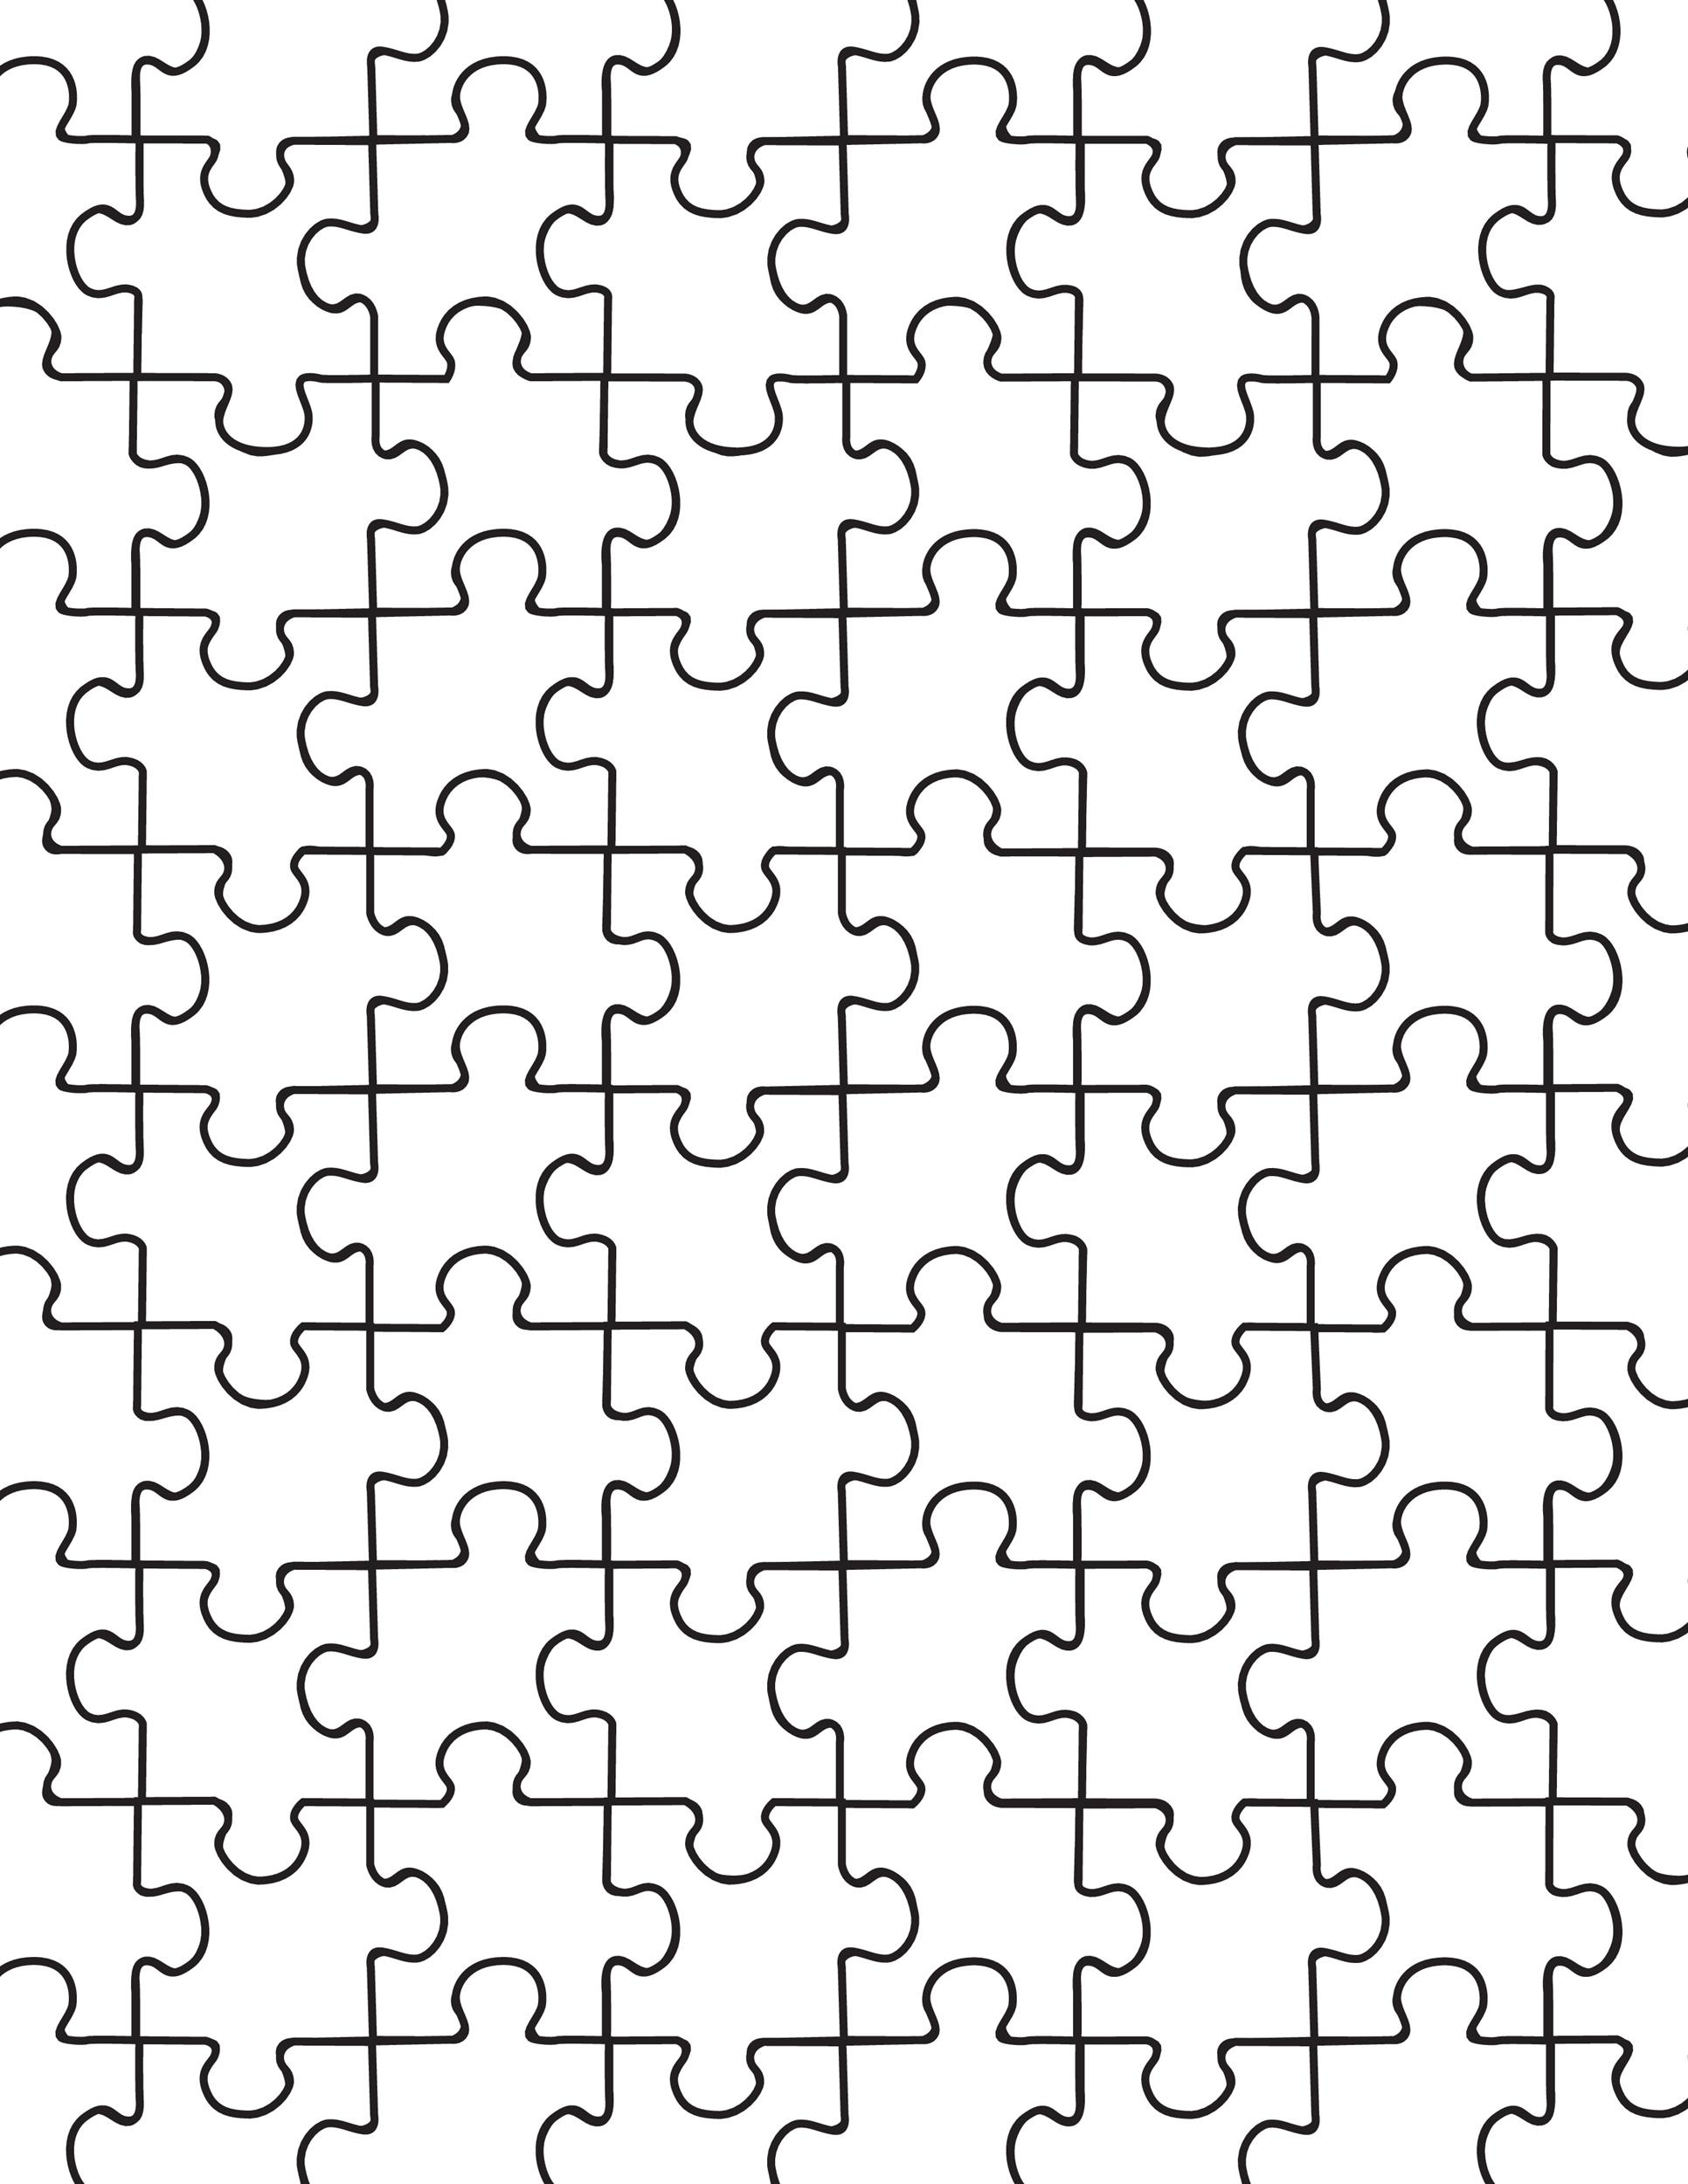 Free puzzle piece template 04